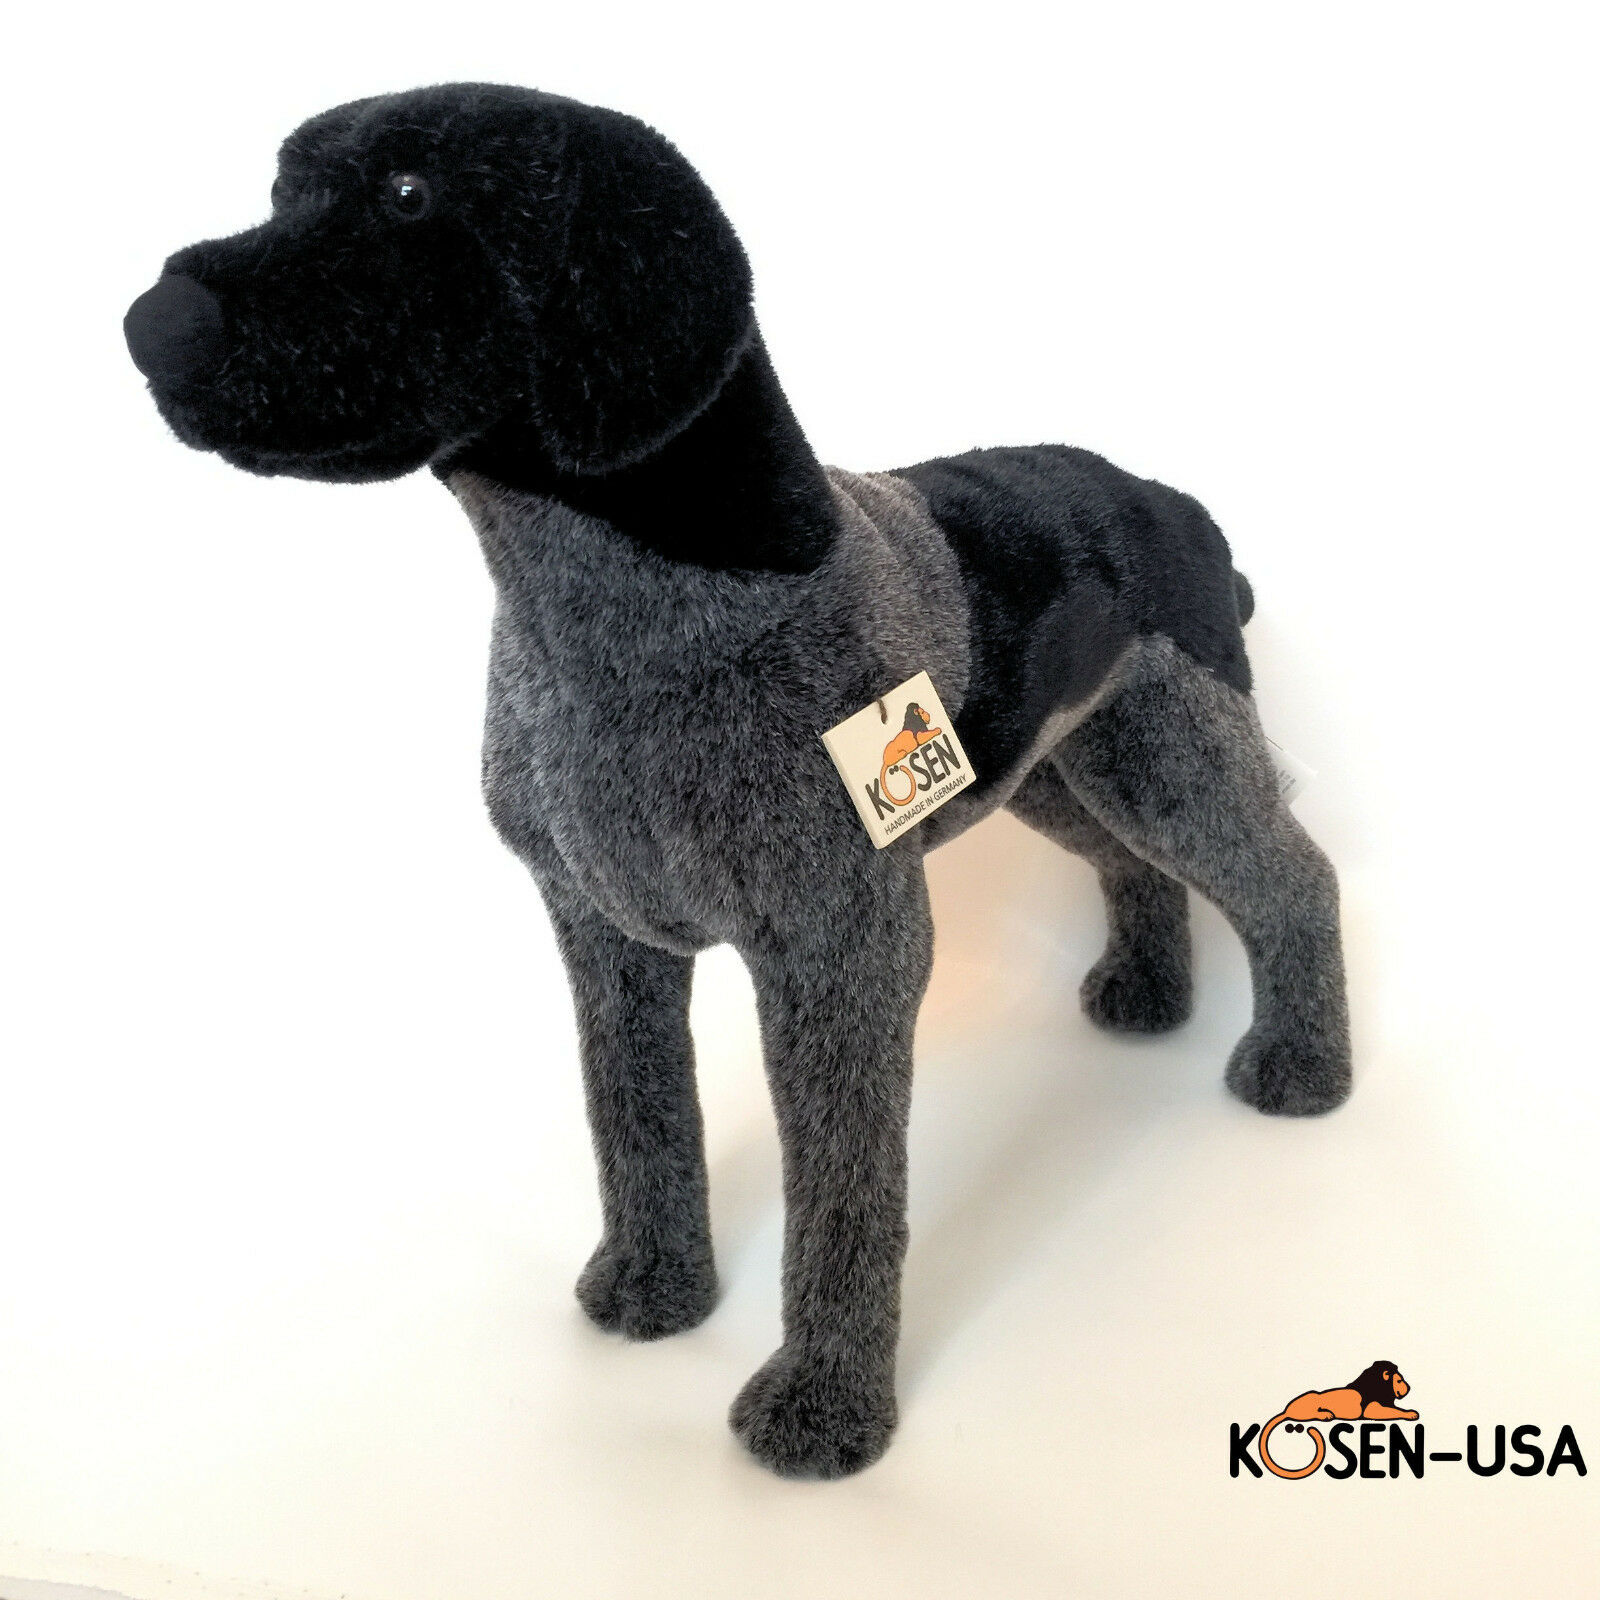 Koesen Kosen German Pointer Dog 5521 Handmade in Germany Plush Stuffed Animal